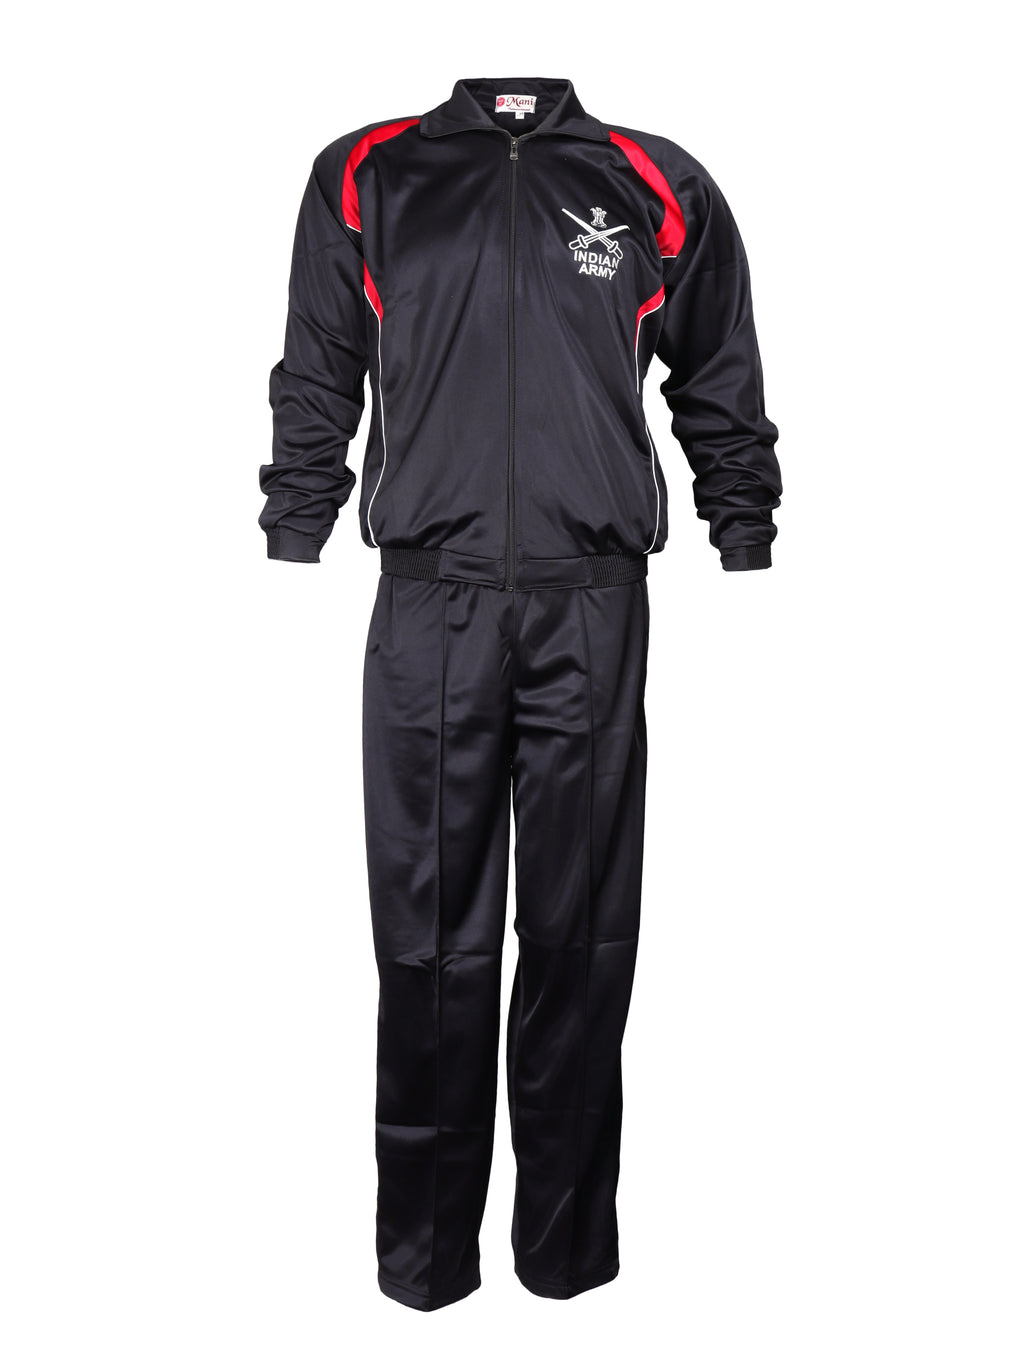 Black & Red Tracksuit Indian Army